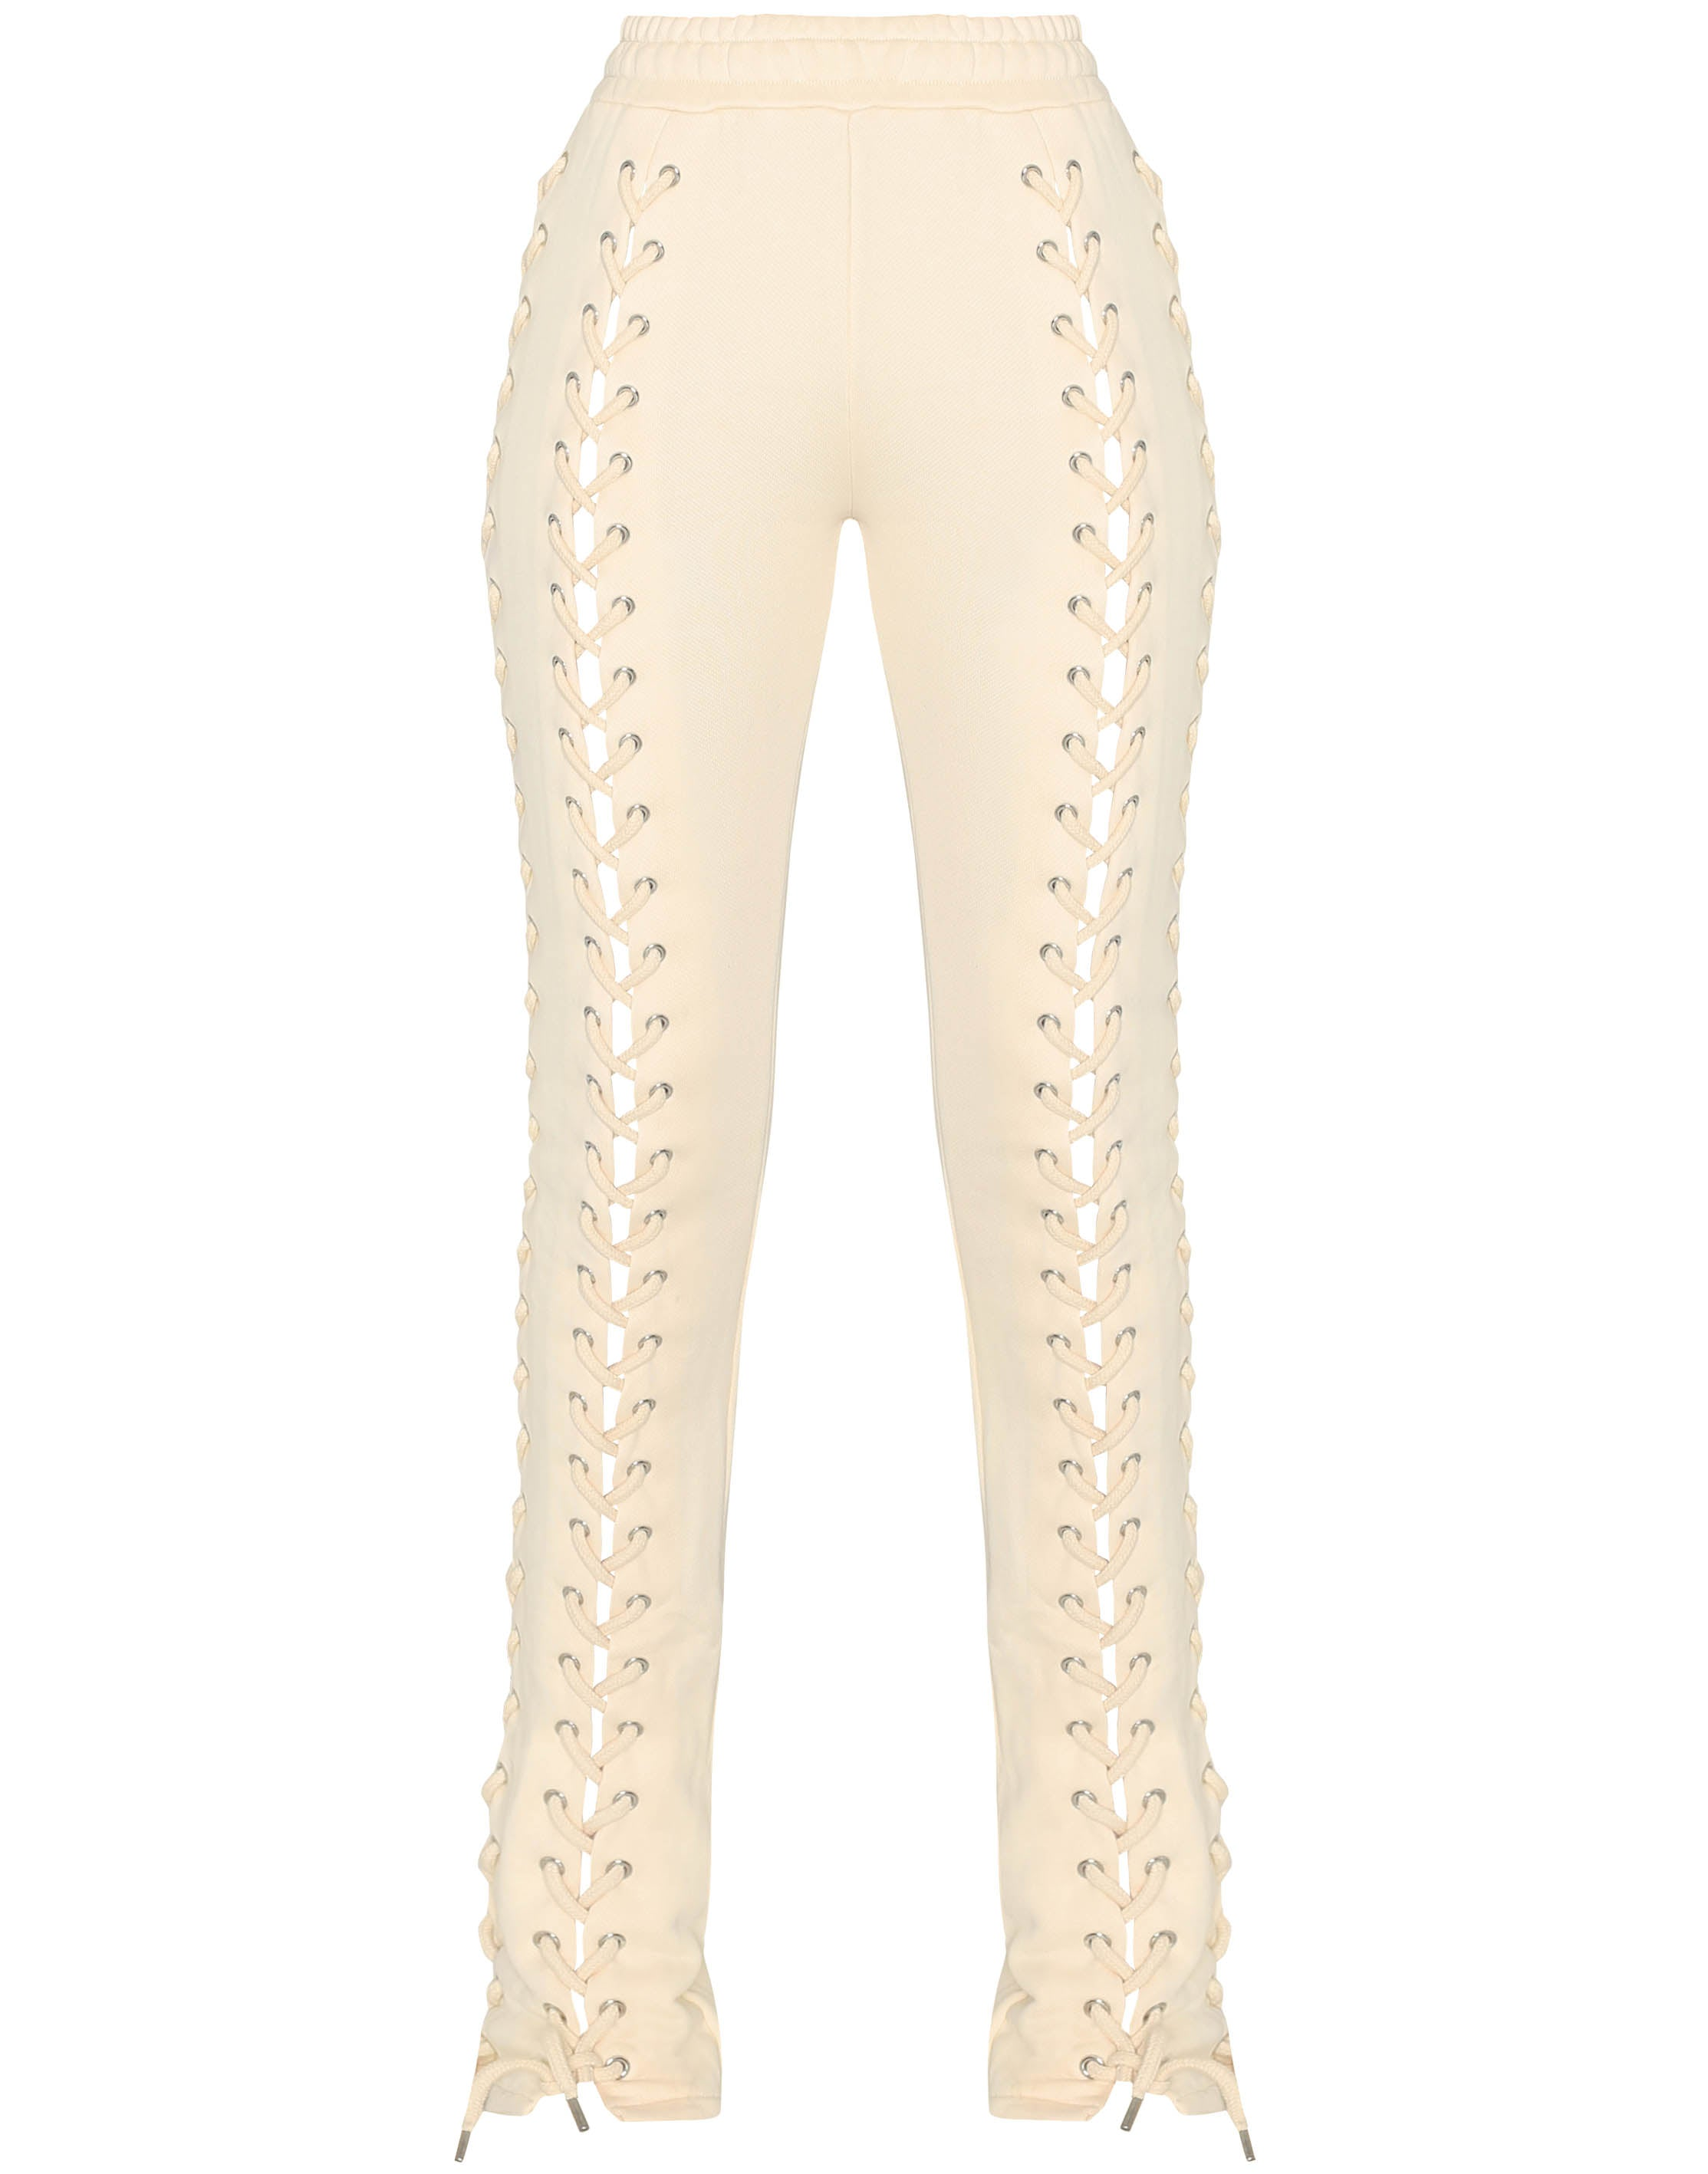 HIDDEN CULT Wynn Laced Up Cream Off White Pants Nude Sand Beige Fashion Streetwear Sweatpants